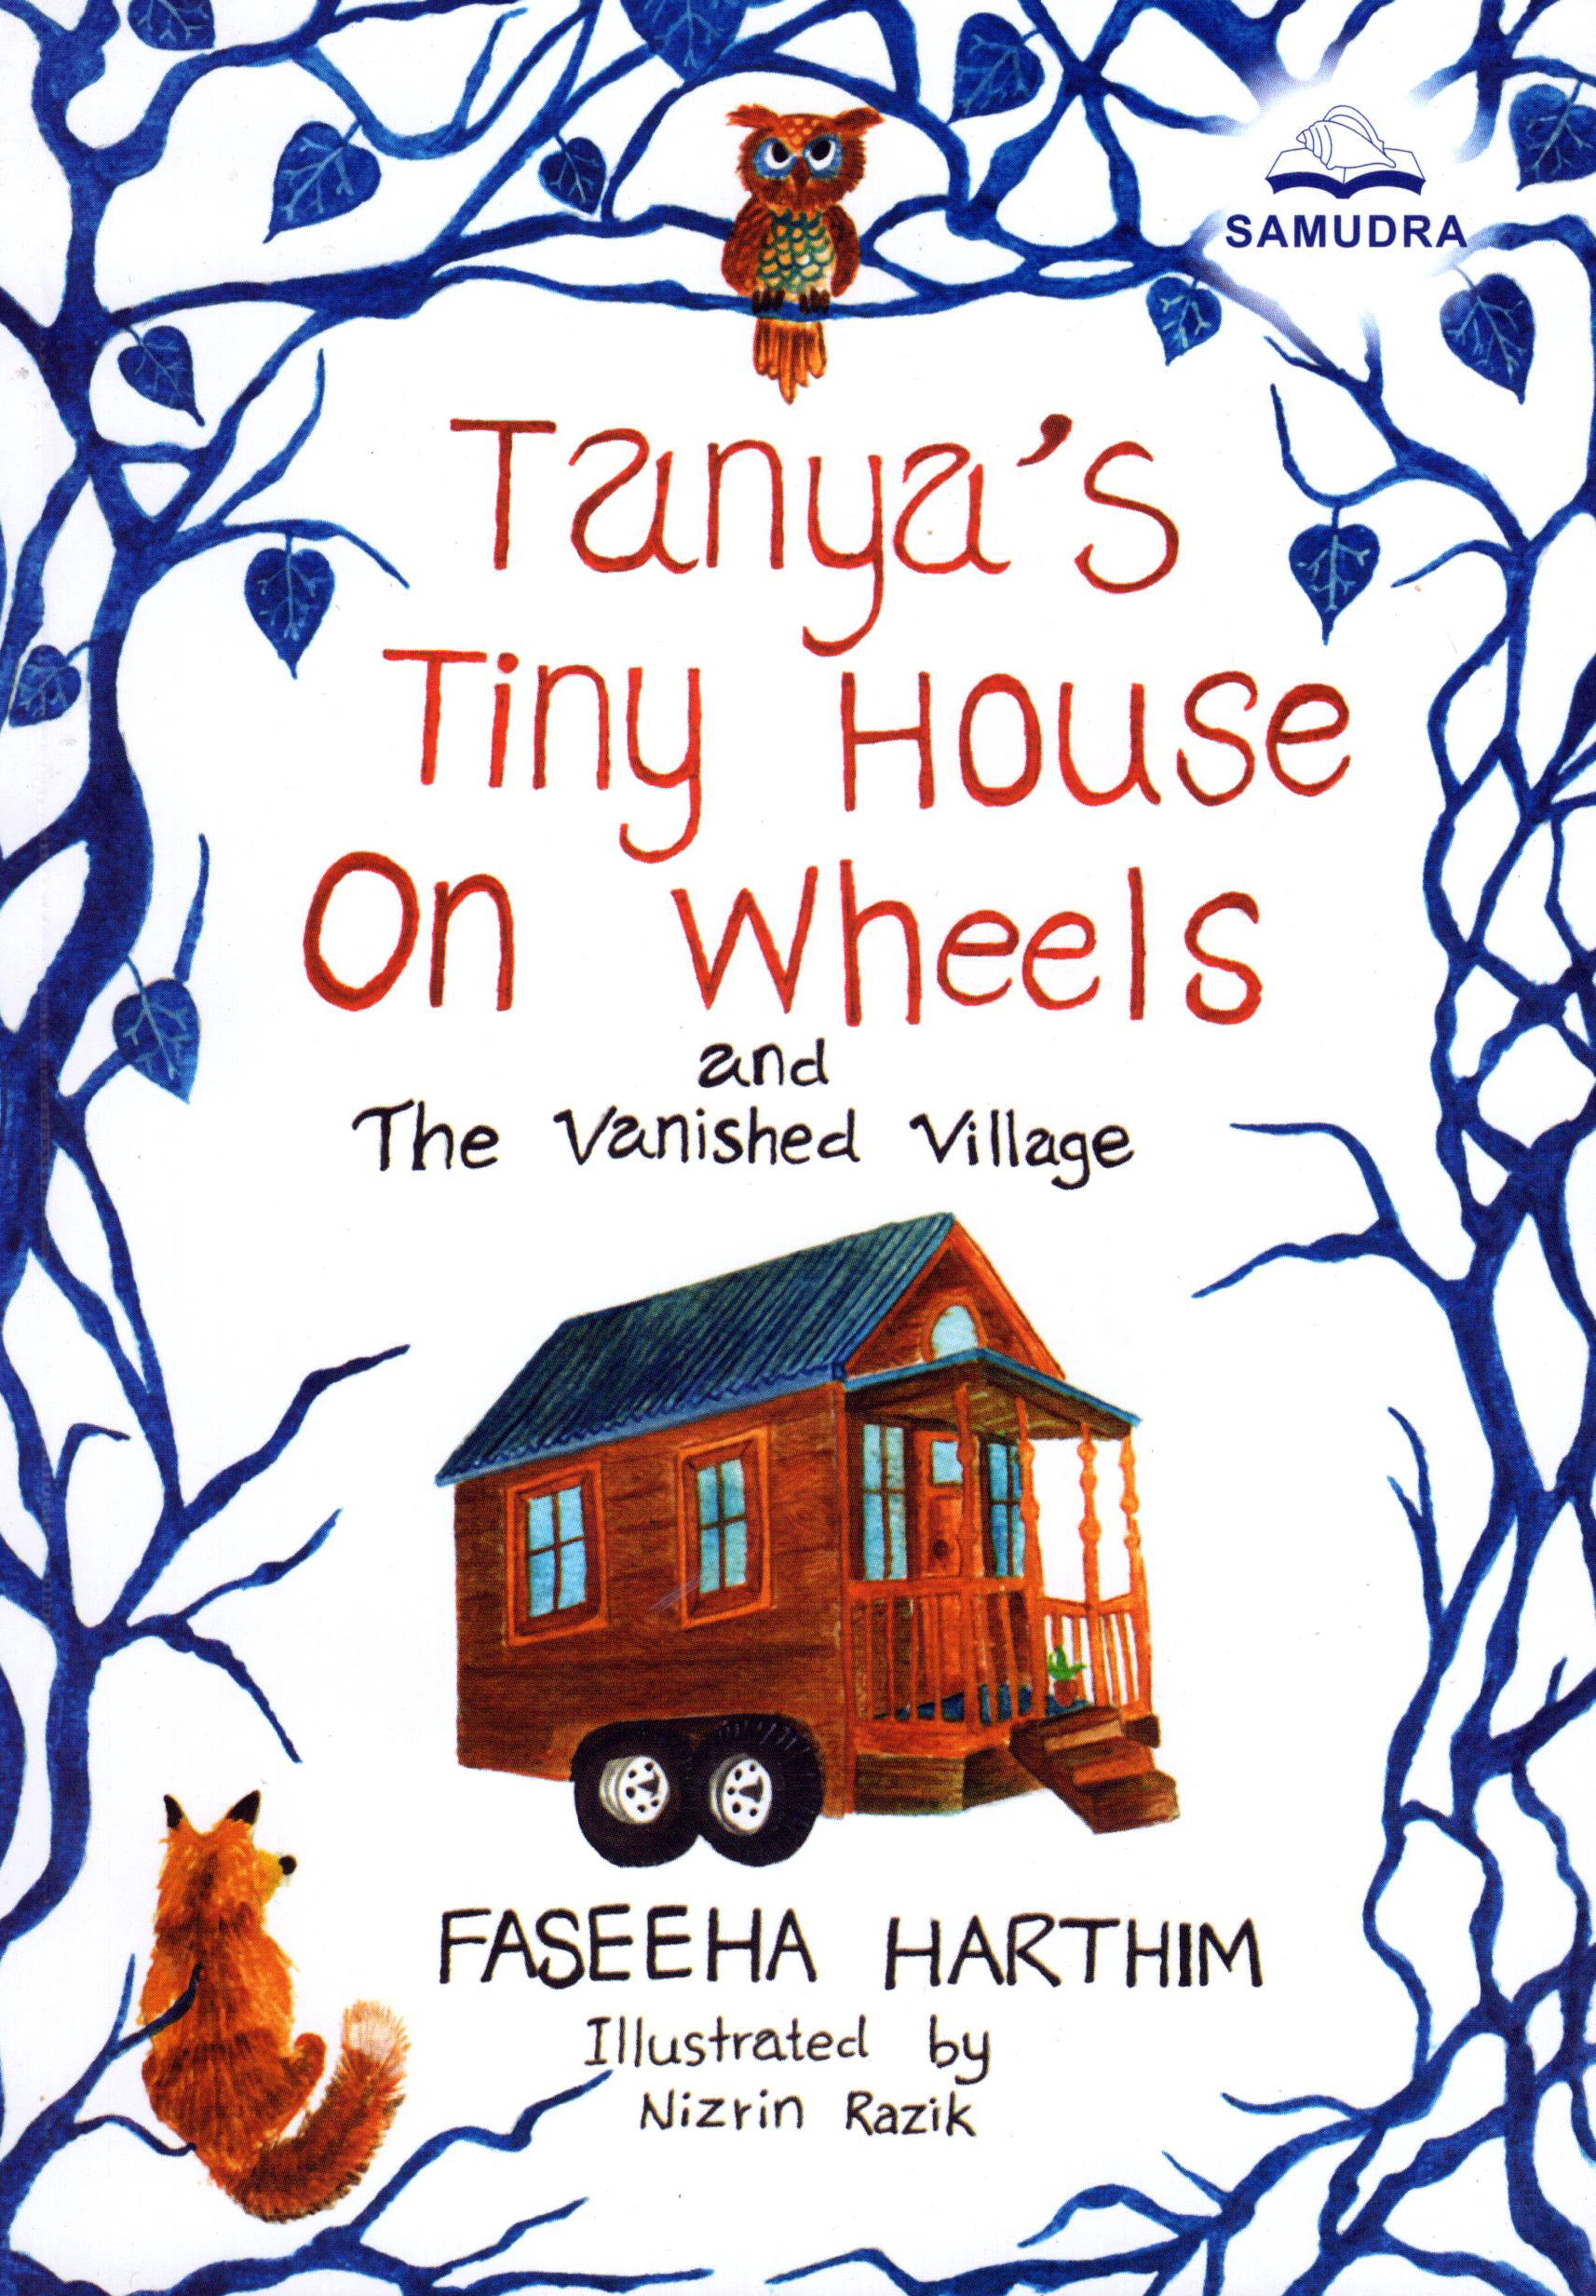 Tanya's Tiny House On Wheels and The Vanished Village.